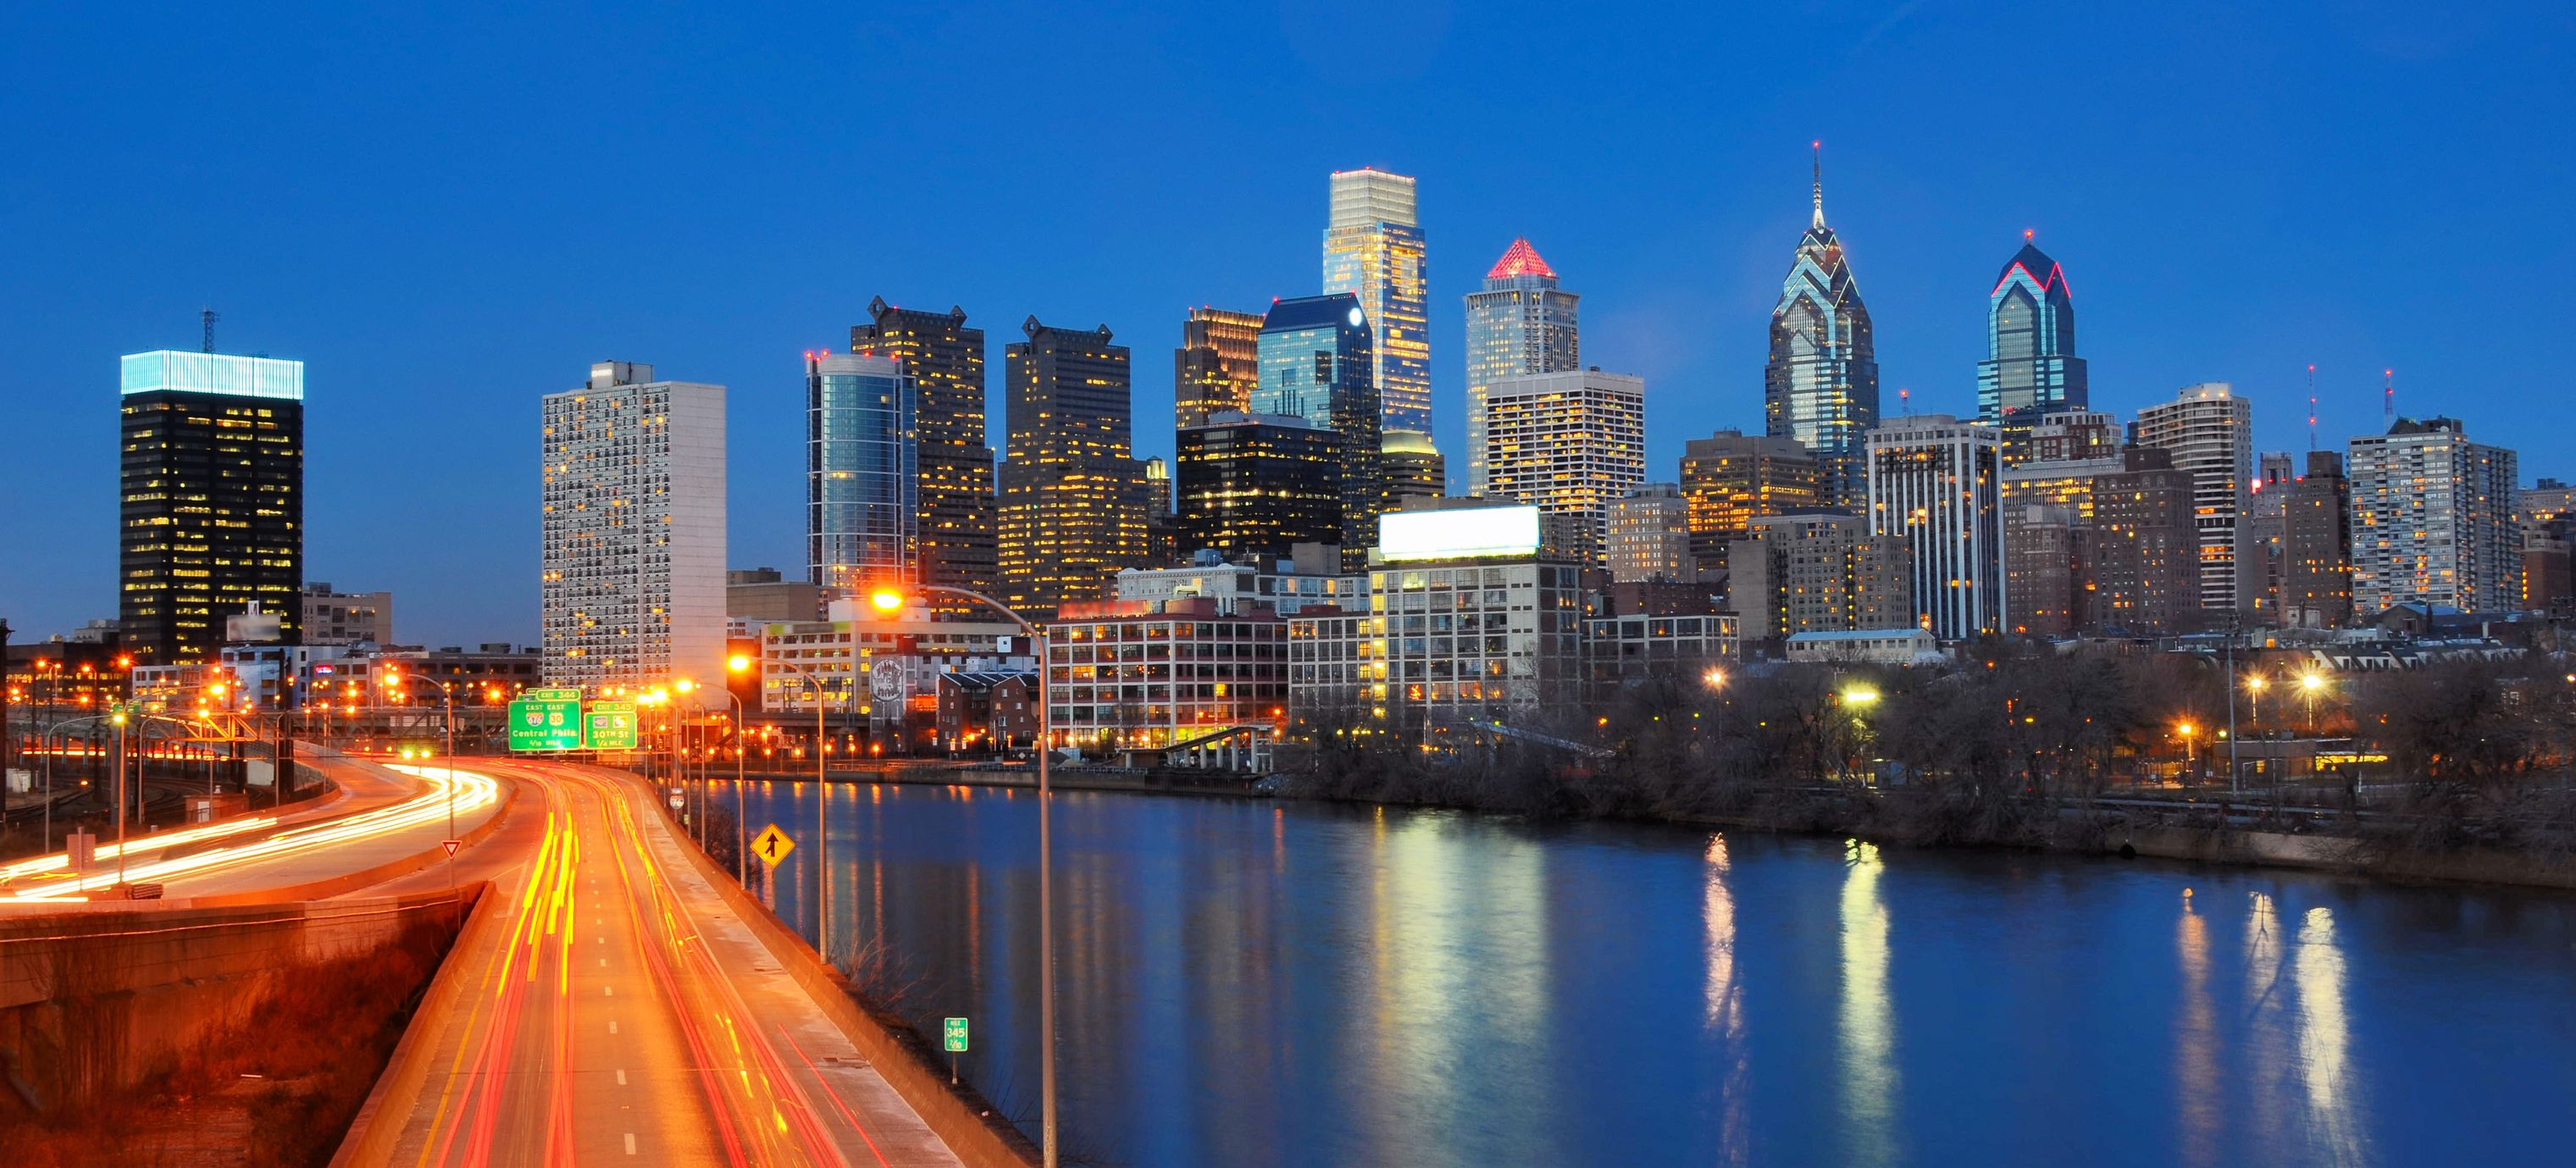 10 Ultimate United States Travel Destinations In 2016